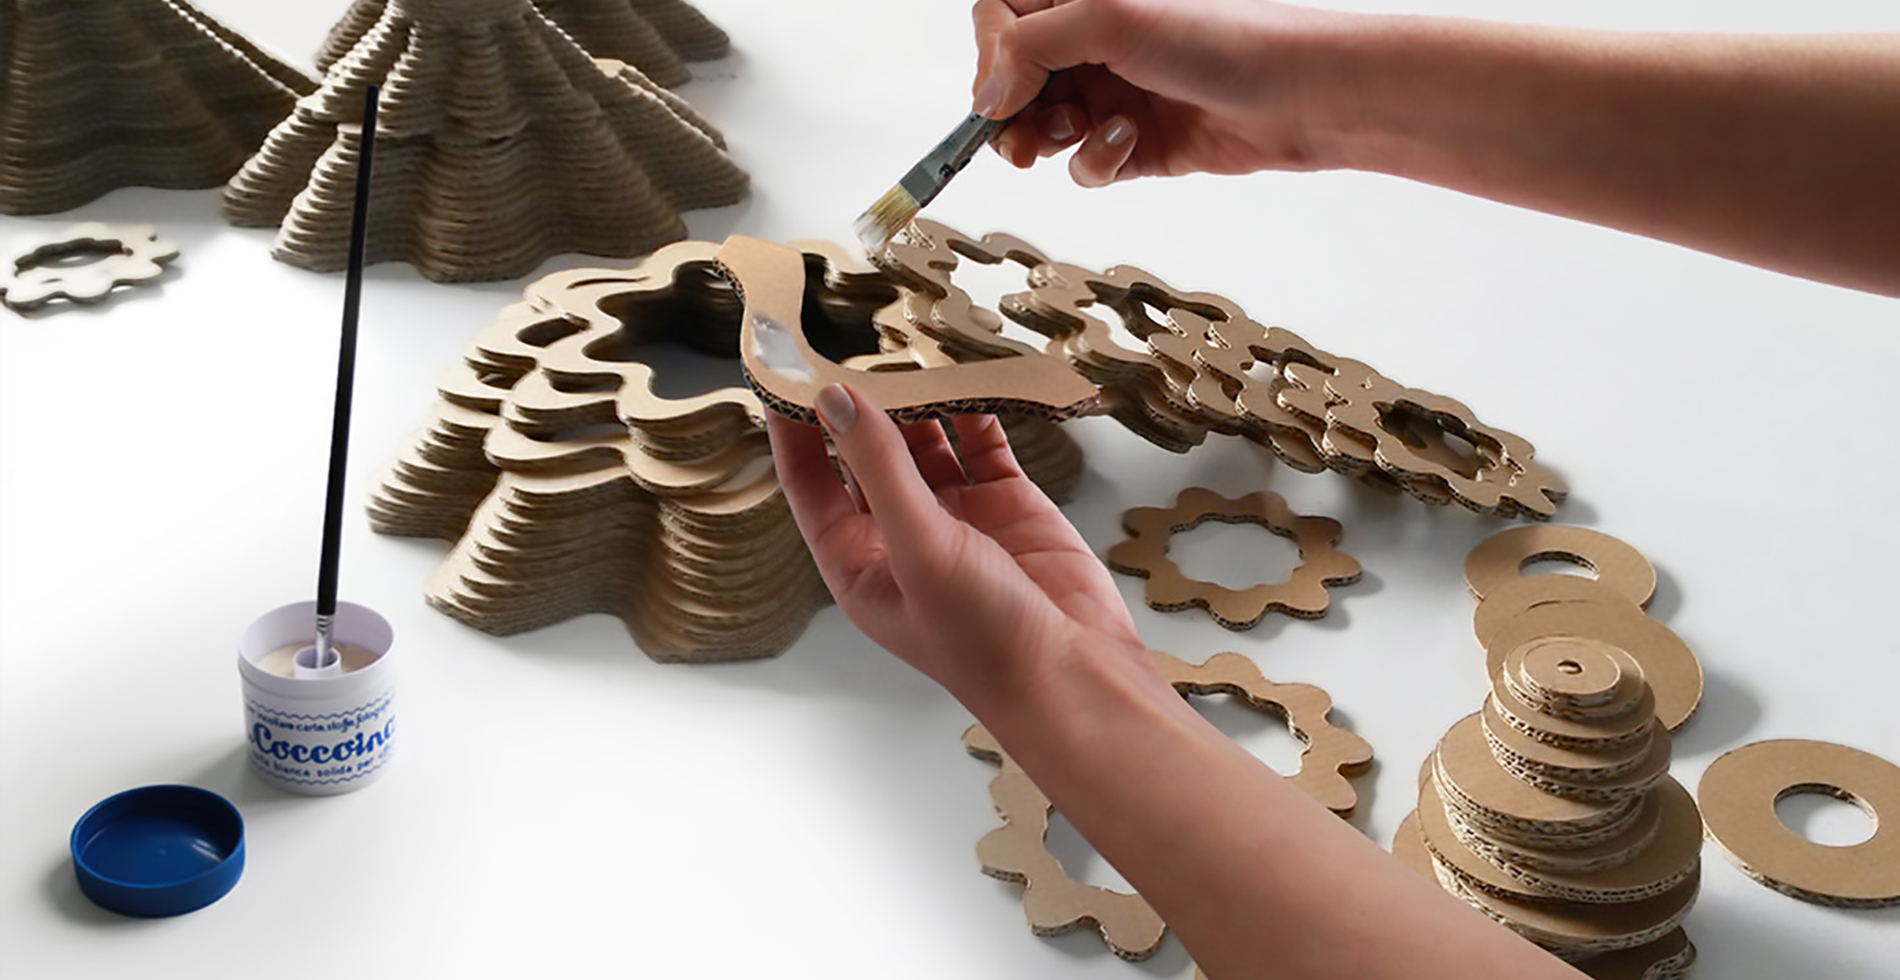 Workshop recycled cardboard | Sustainable design by Antonio Pascale for eetico - Made in Italy